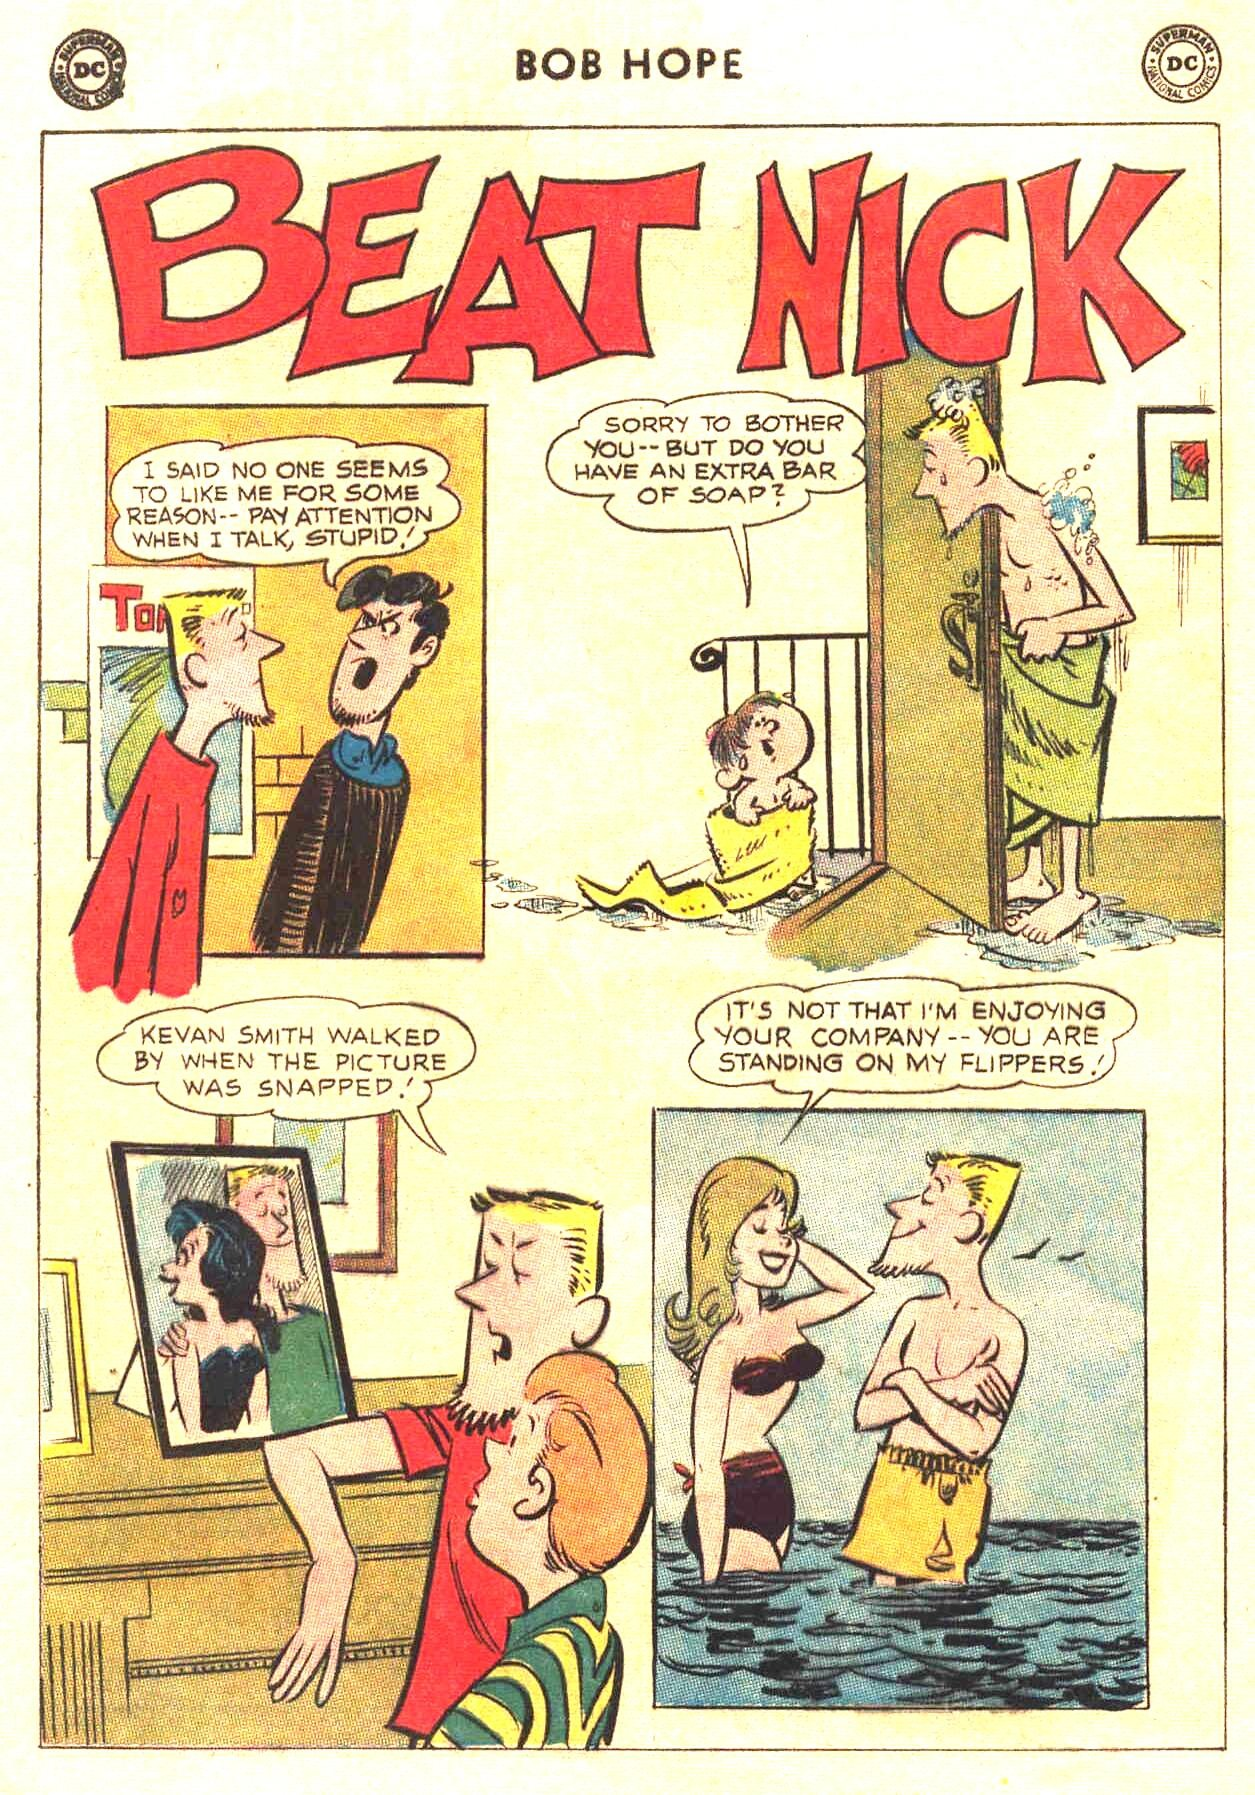 Beat Nick comics